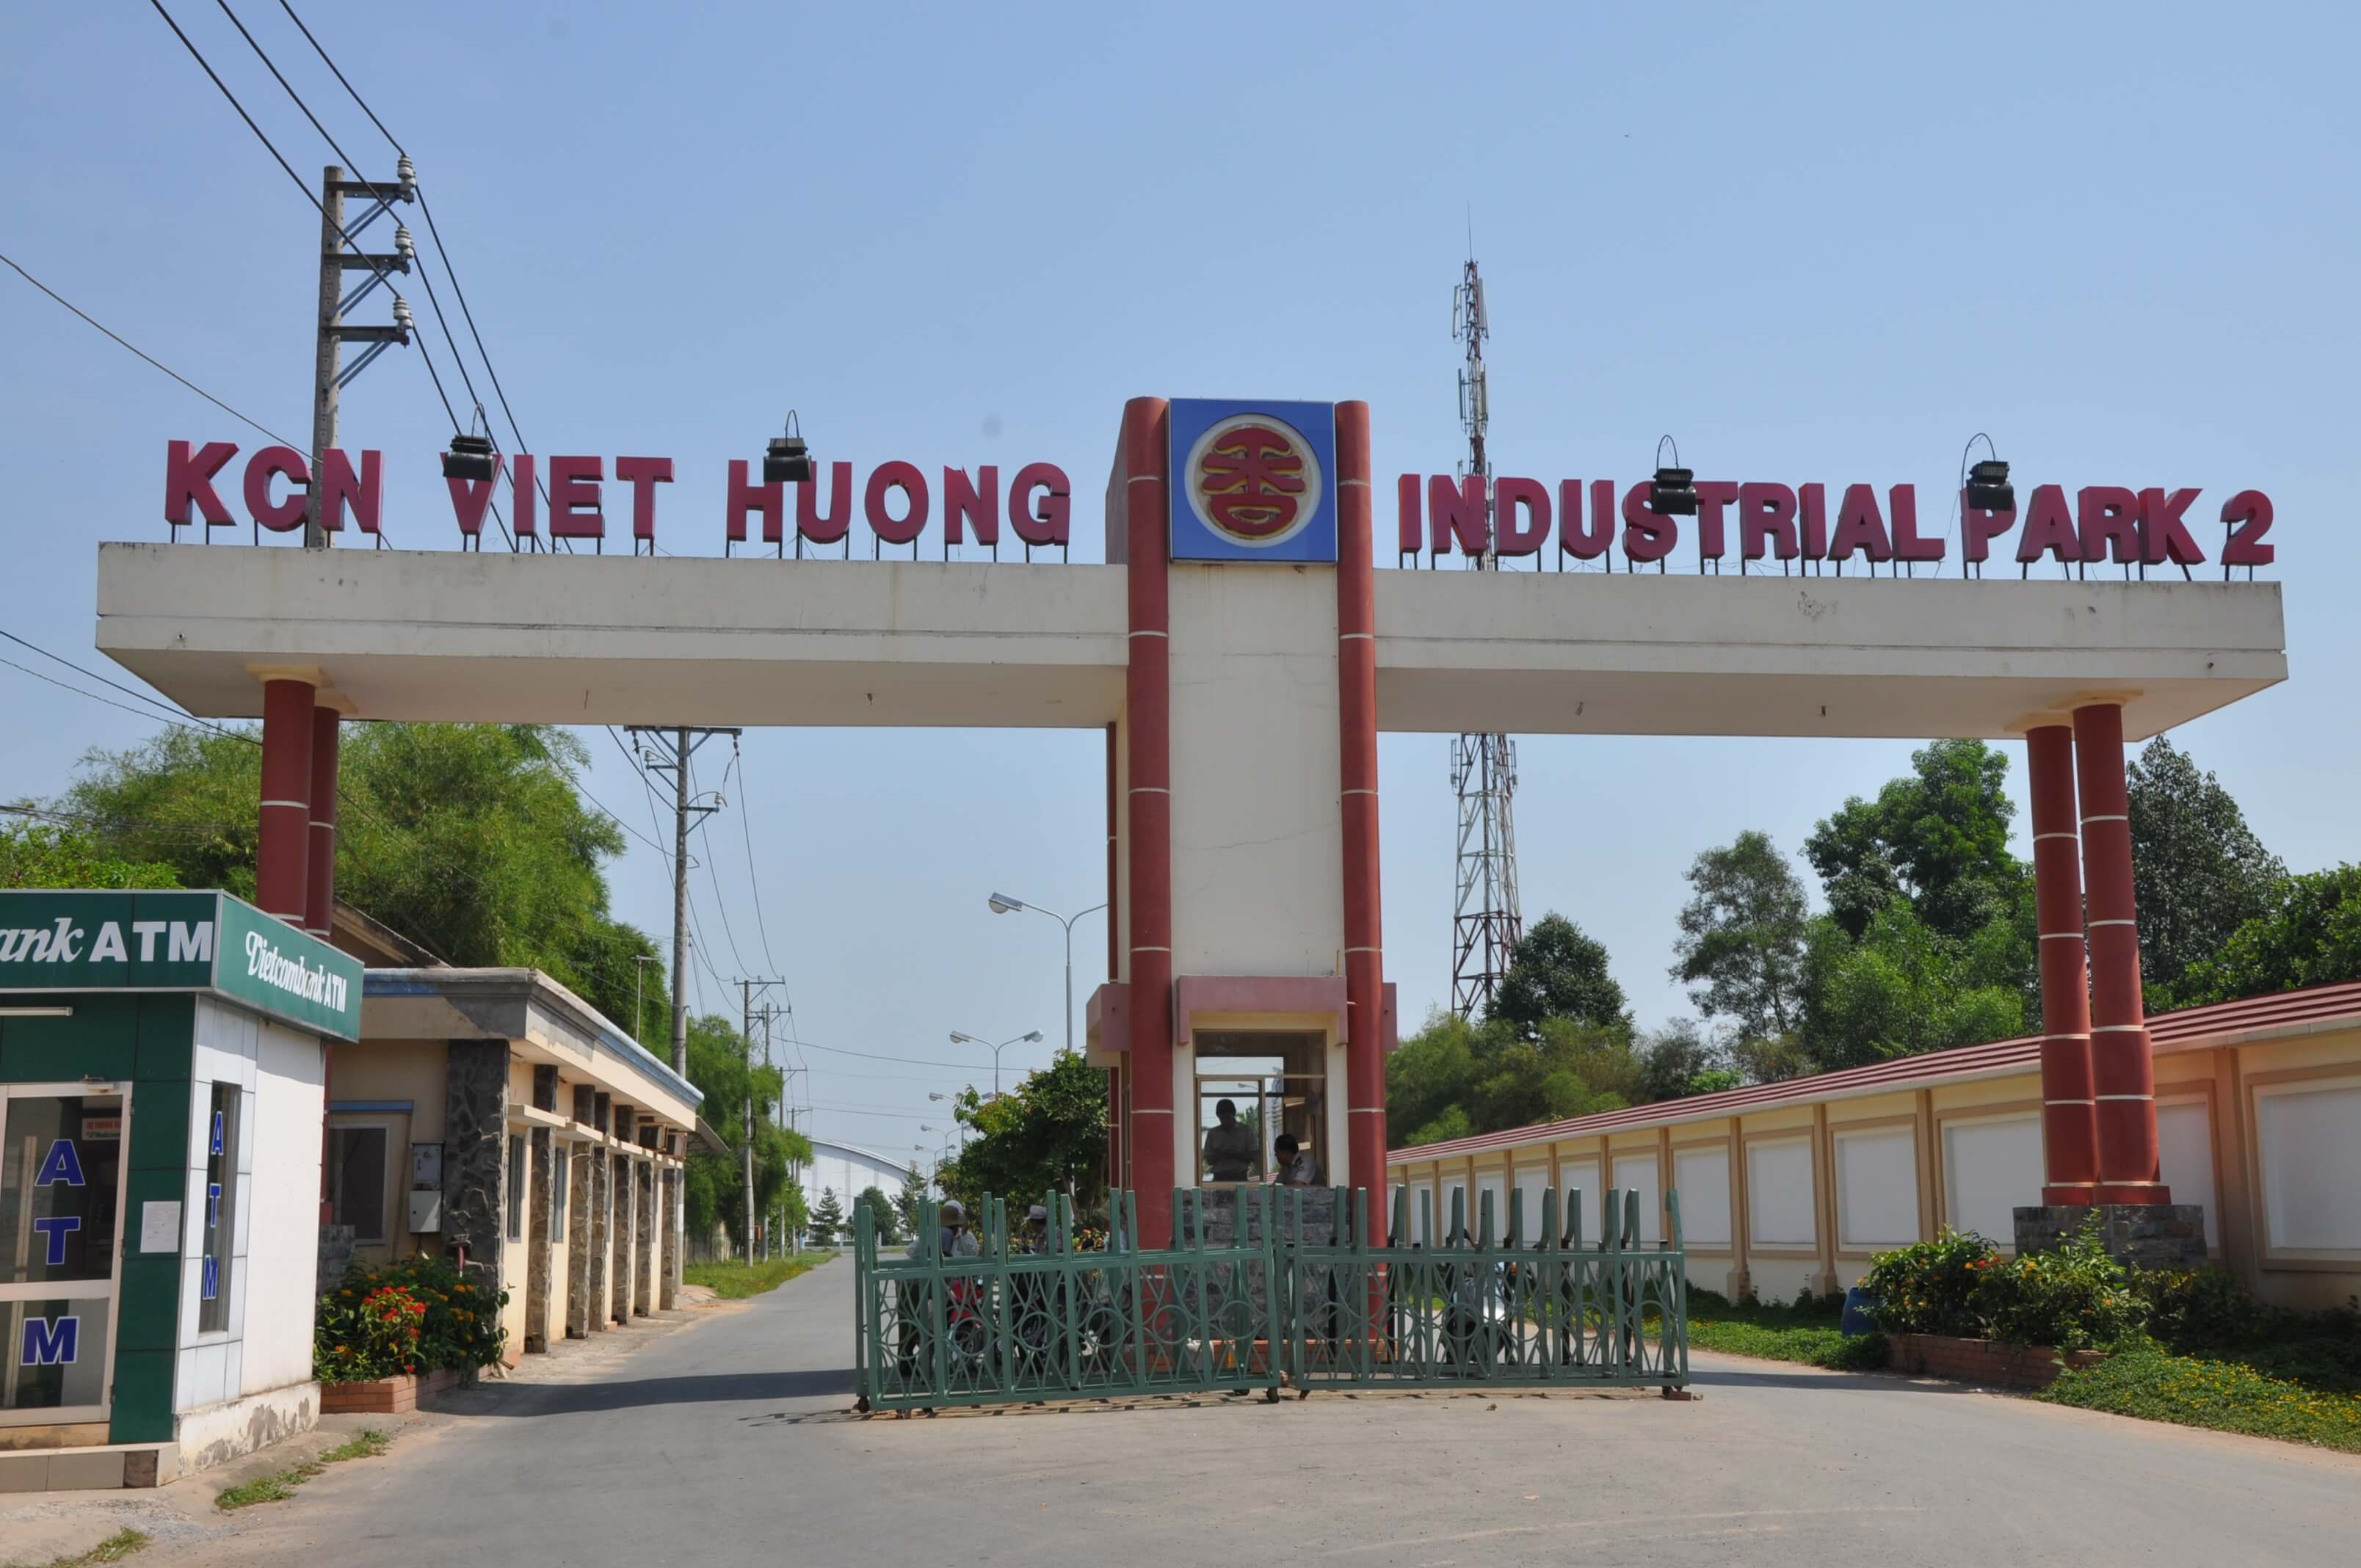 Industrial park developer fined for wastewater dumping in southern Vietnam